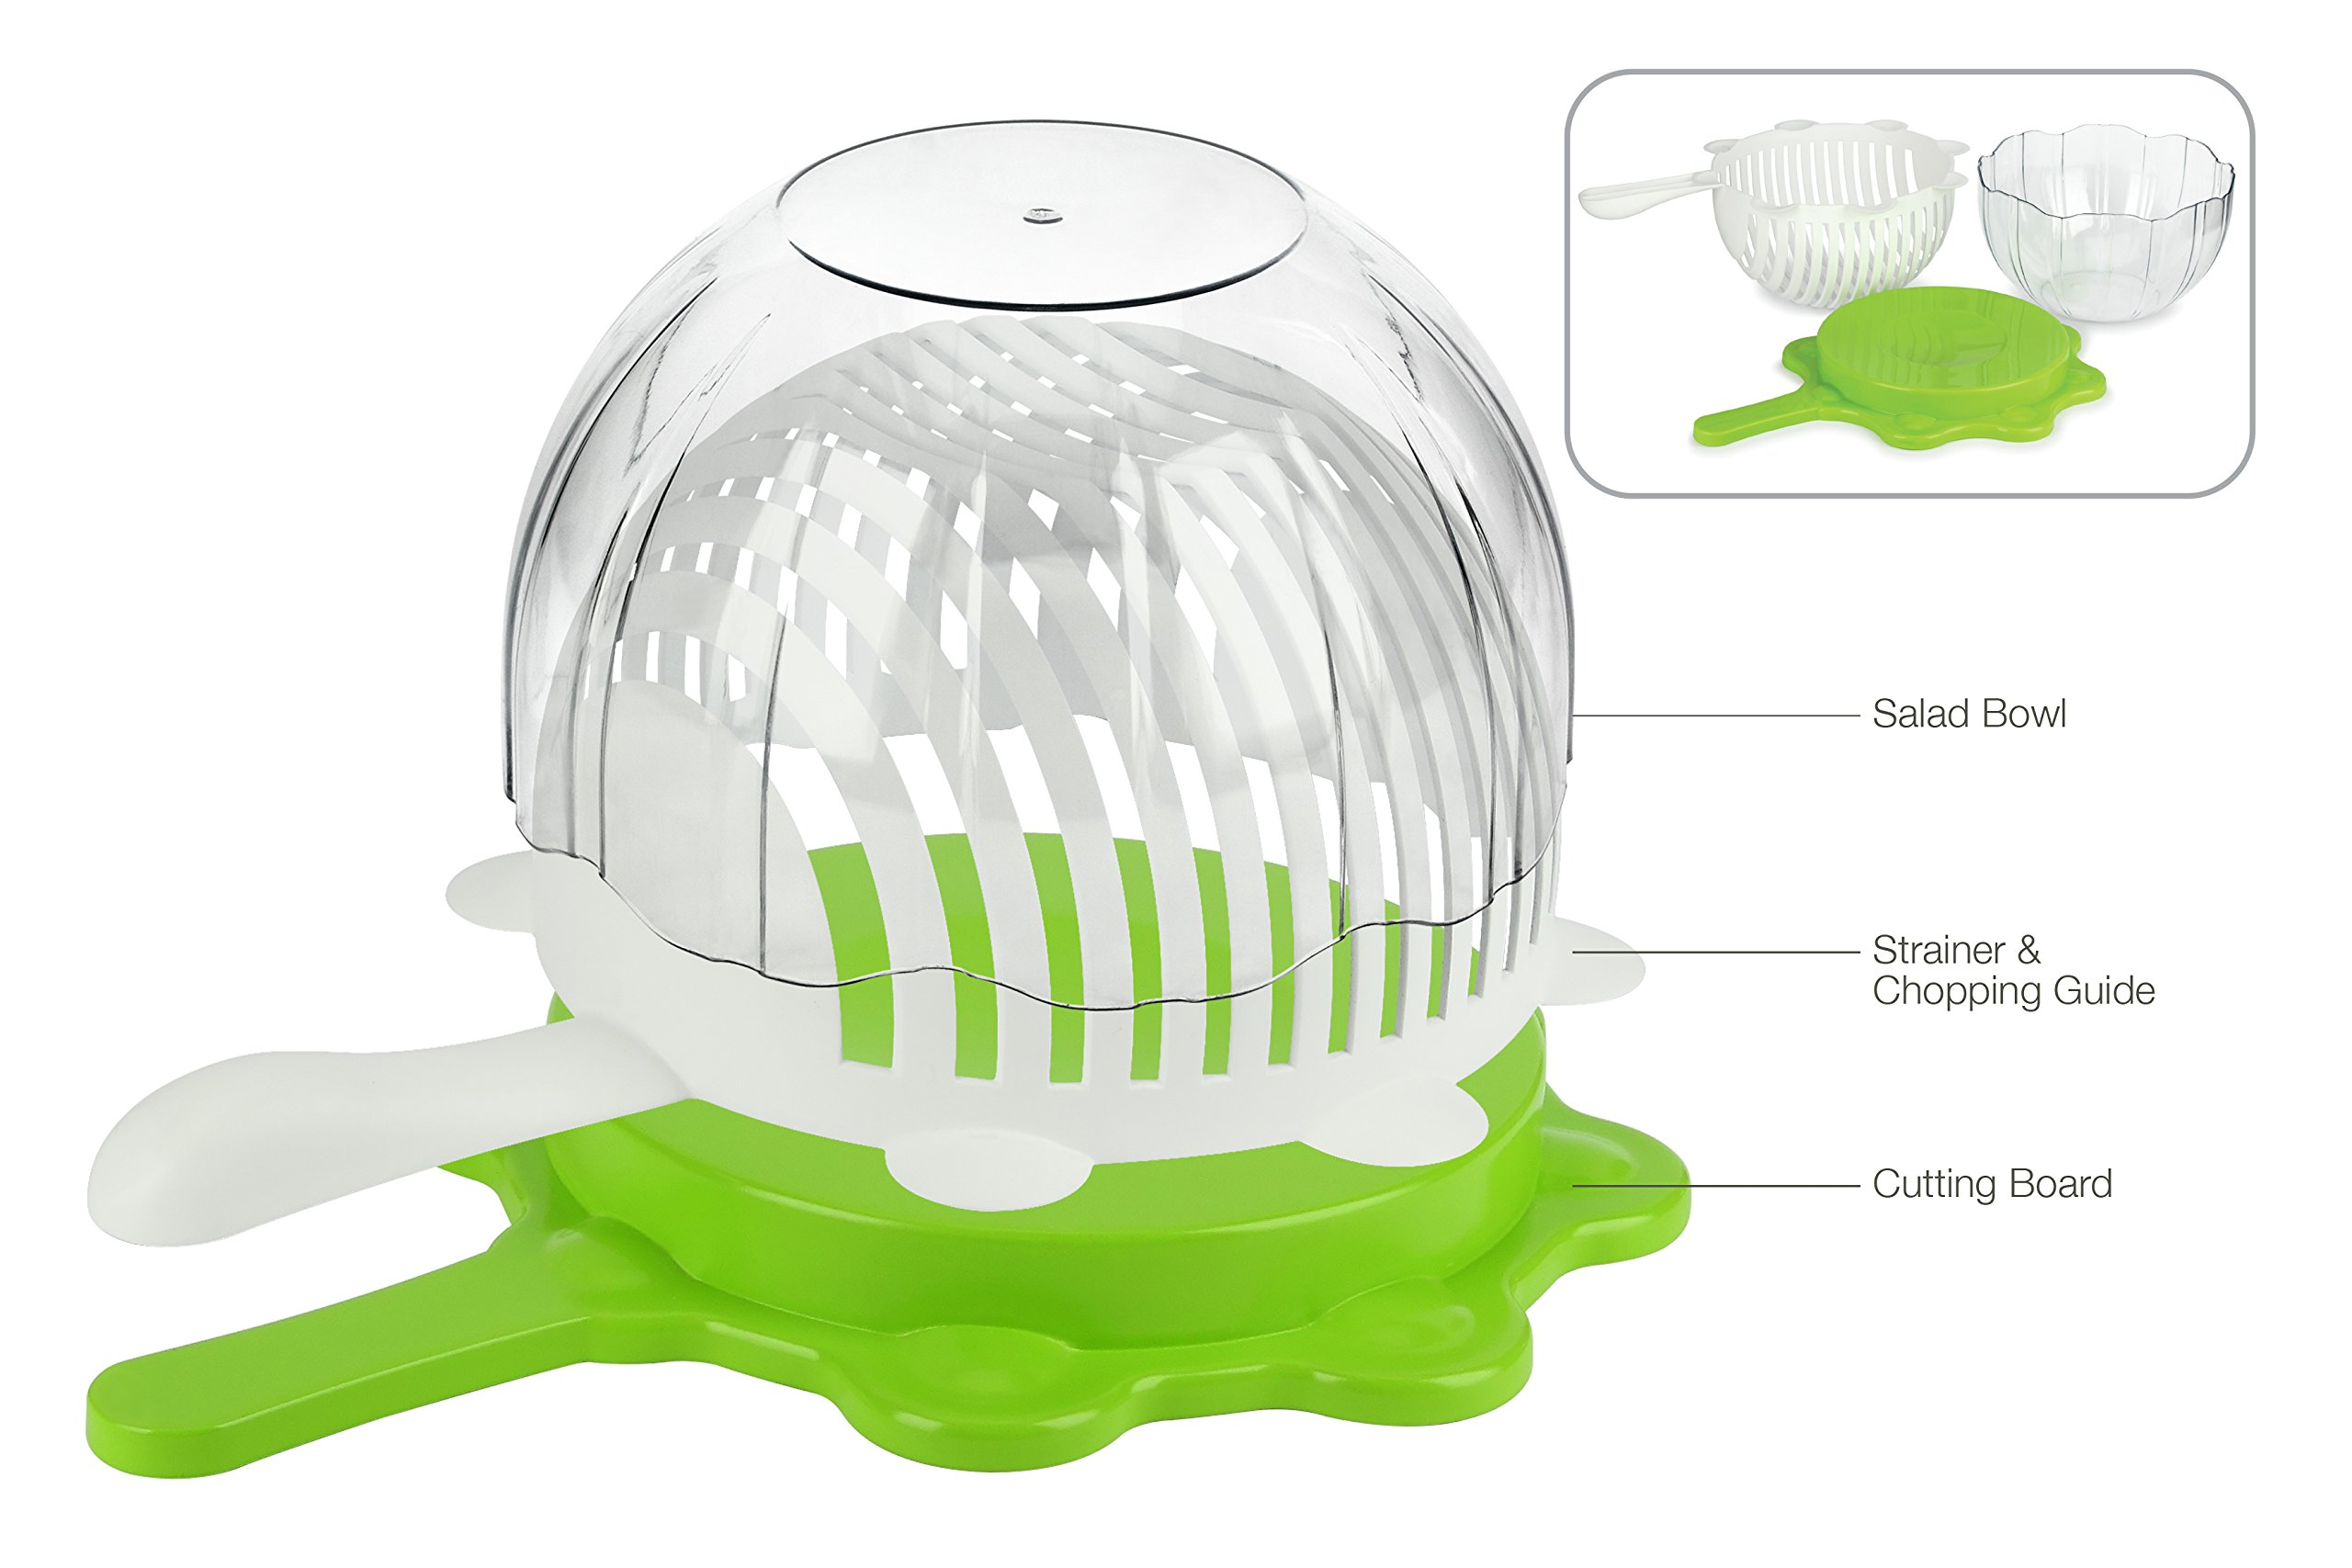 Urban Trend Smart Cut Salad - Rinse, Cut & Serve - Combines Elegant Salad Bowl, Strainer, Colander, Chopping Guide, and Cutting Board - Fresh Vegetable and Fruit Salad Maker in Less Than 60 Seconds